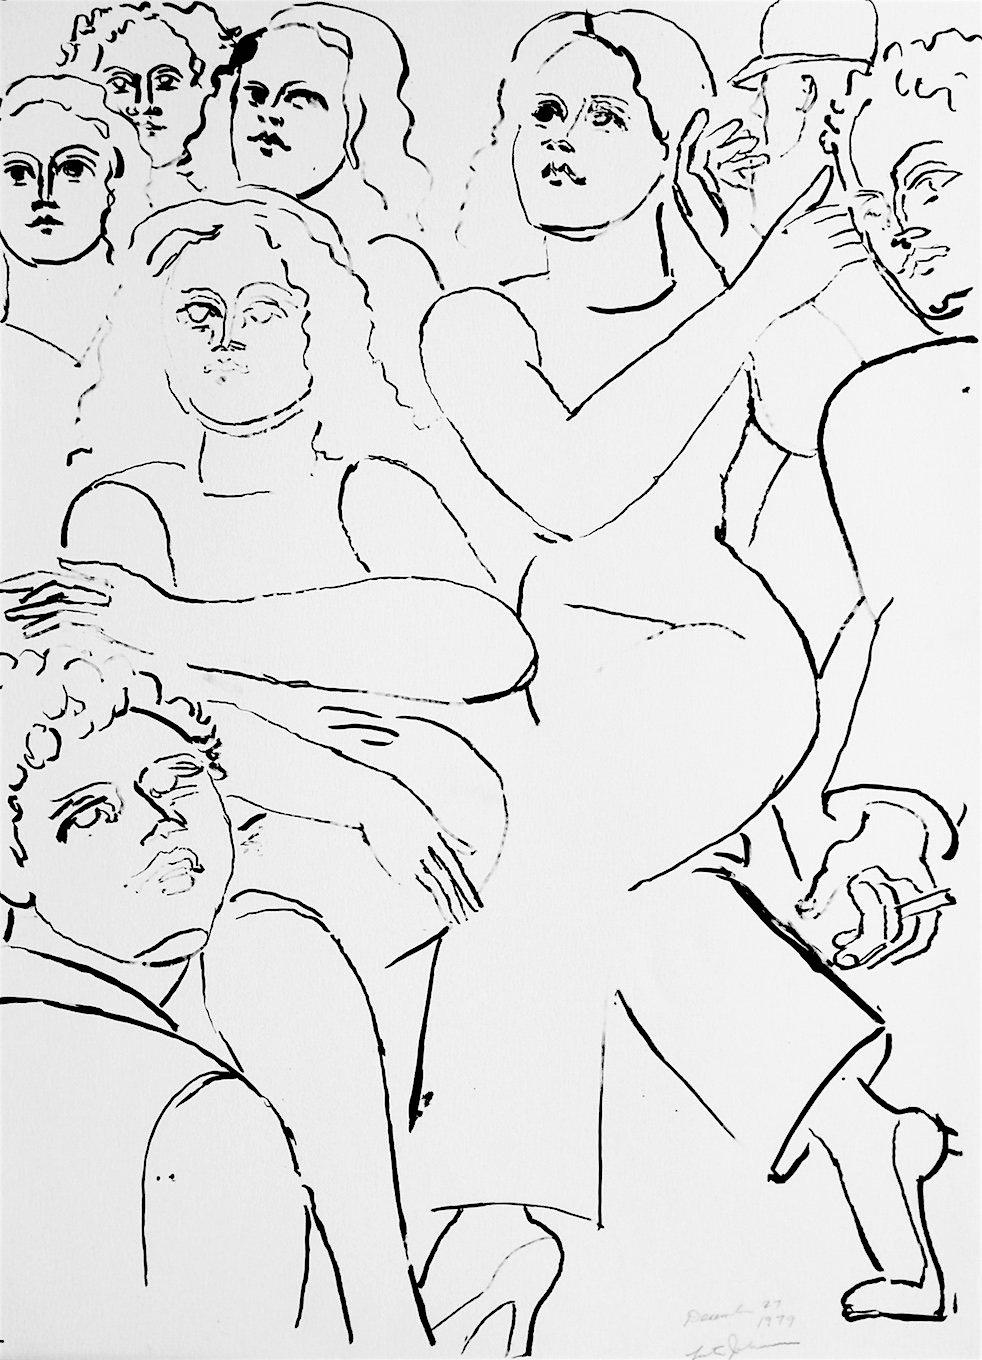 NY STREET SCENE II Hand Drawn Lithograph Black and White Portrait, Expressionist